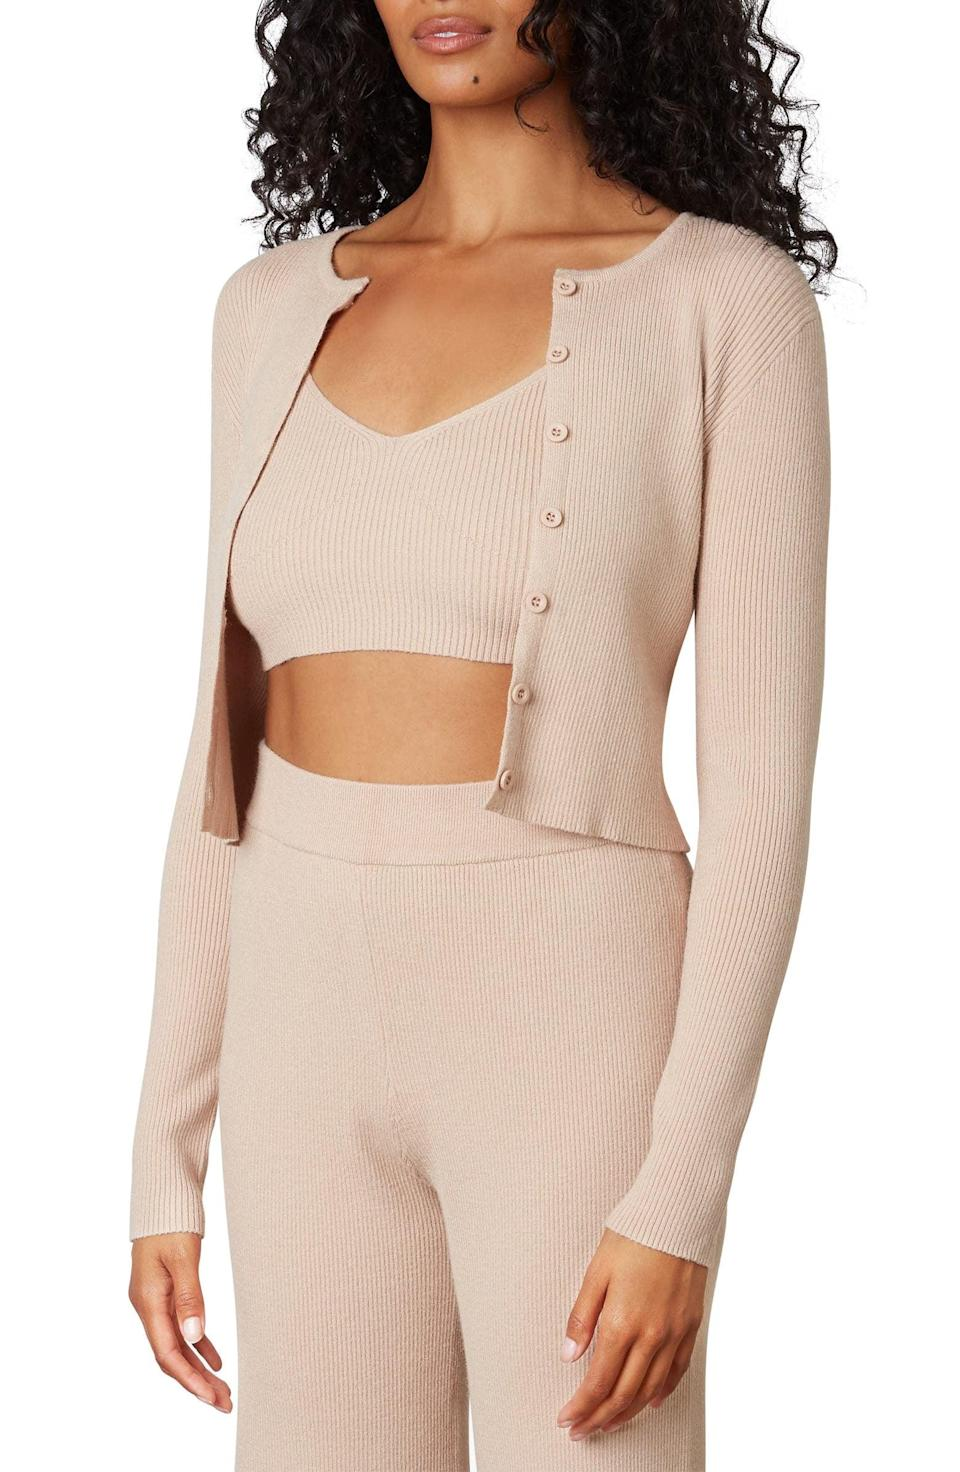 <p>We're very into the color of this <span>Nia Olivia Crop Tank &amp; Cardigan Twin Set</span> ($108). It looks great with white jeans or a cute skirt.</p>